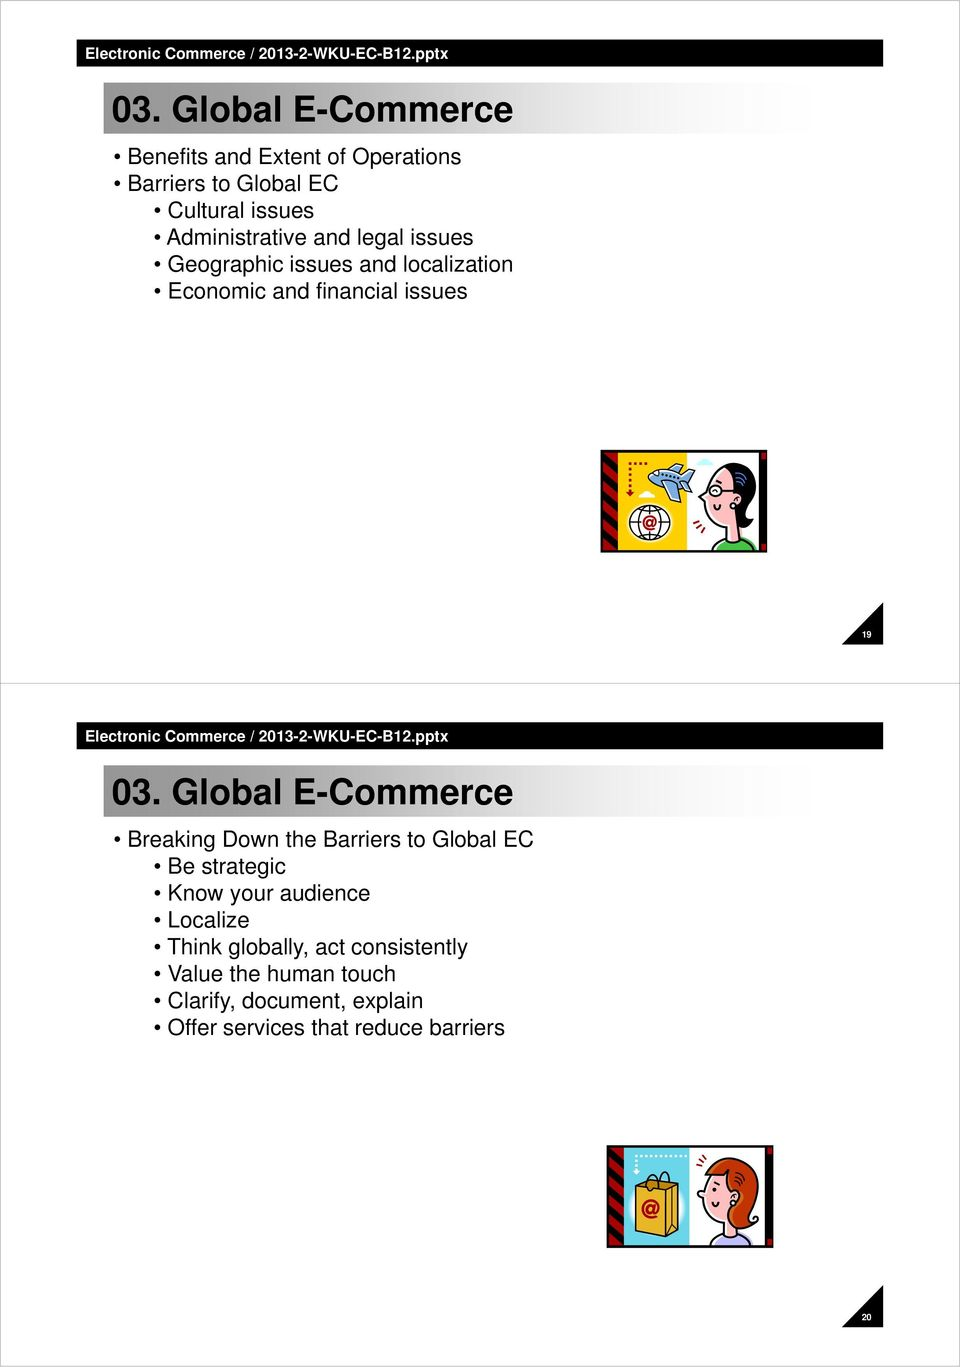 Global E-Commerce Breaking Down the Barriers to Global EC Be strategic Know your audience Localize Think